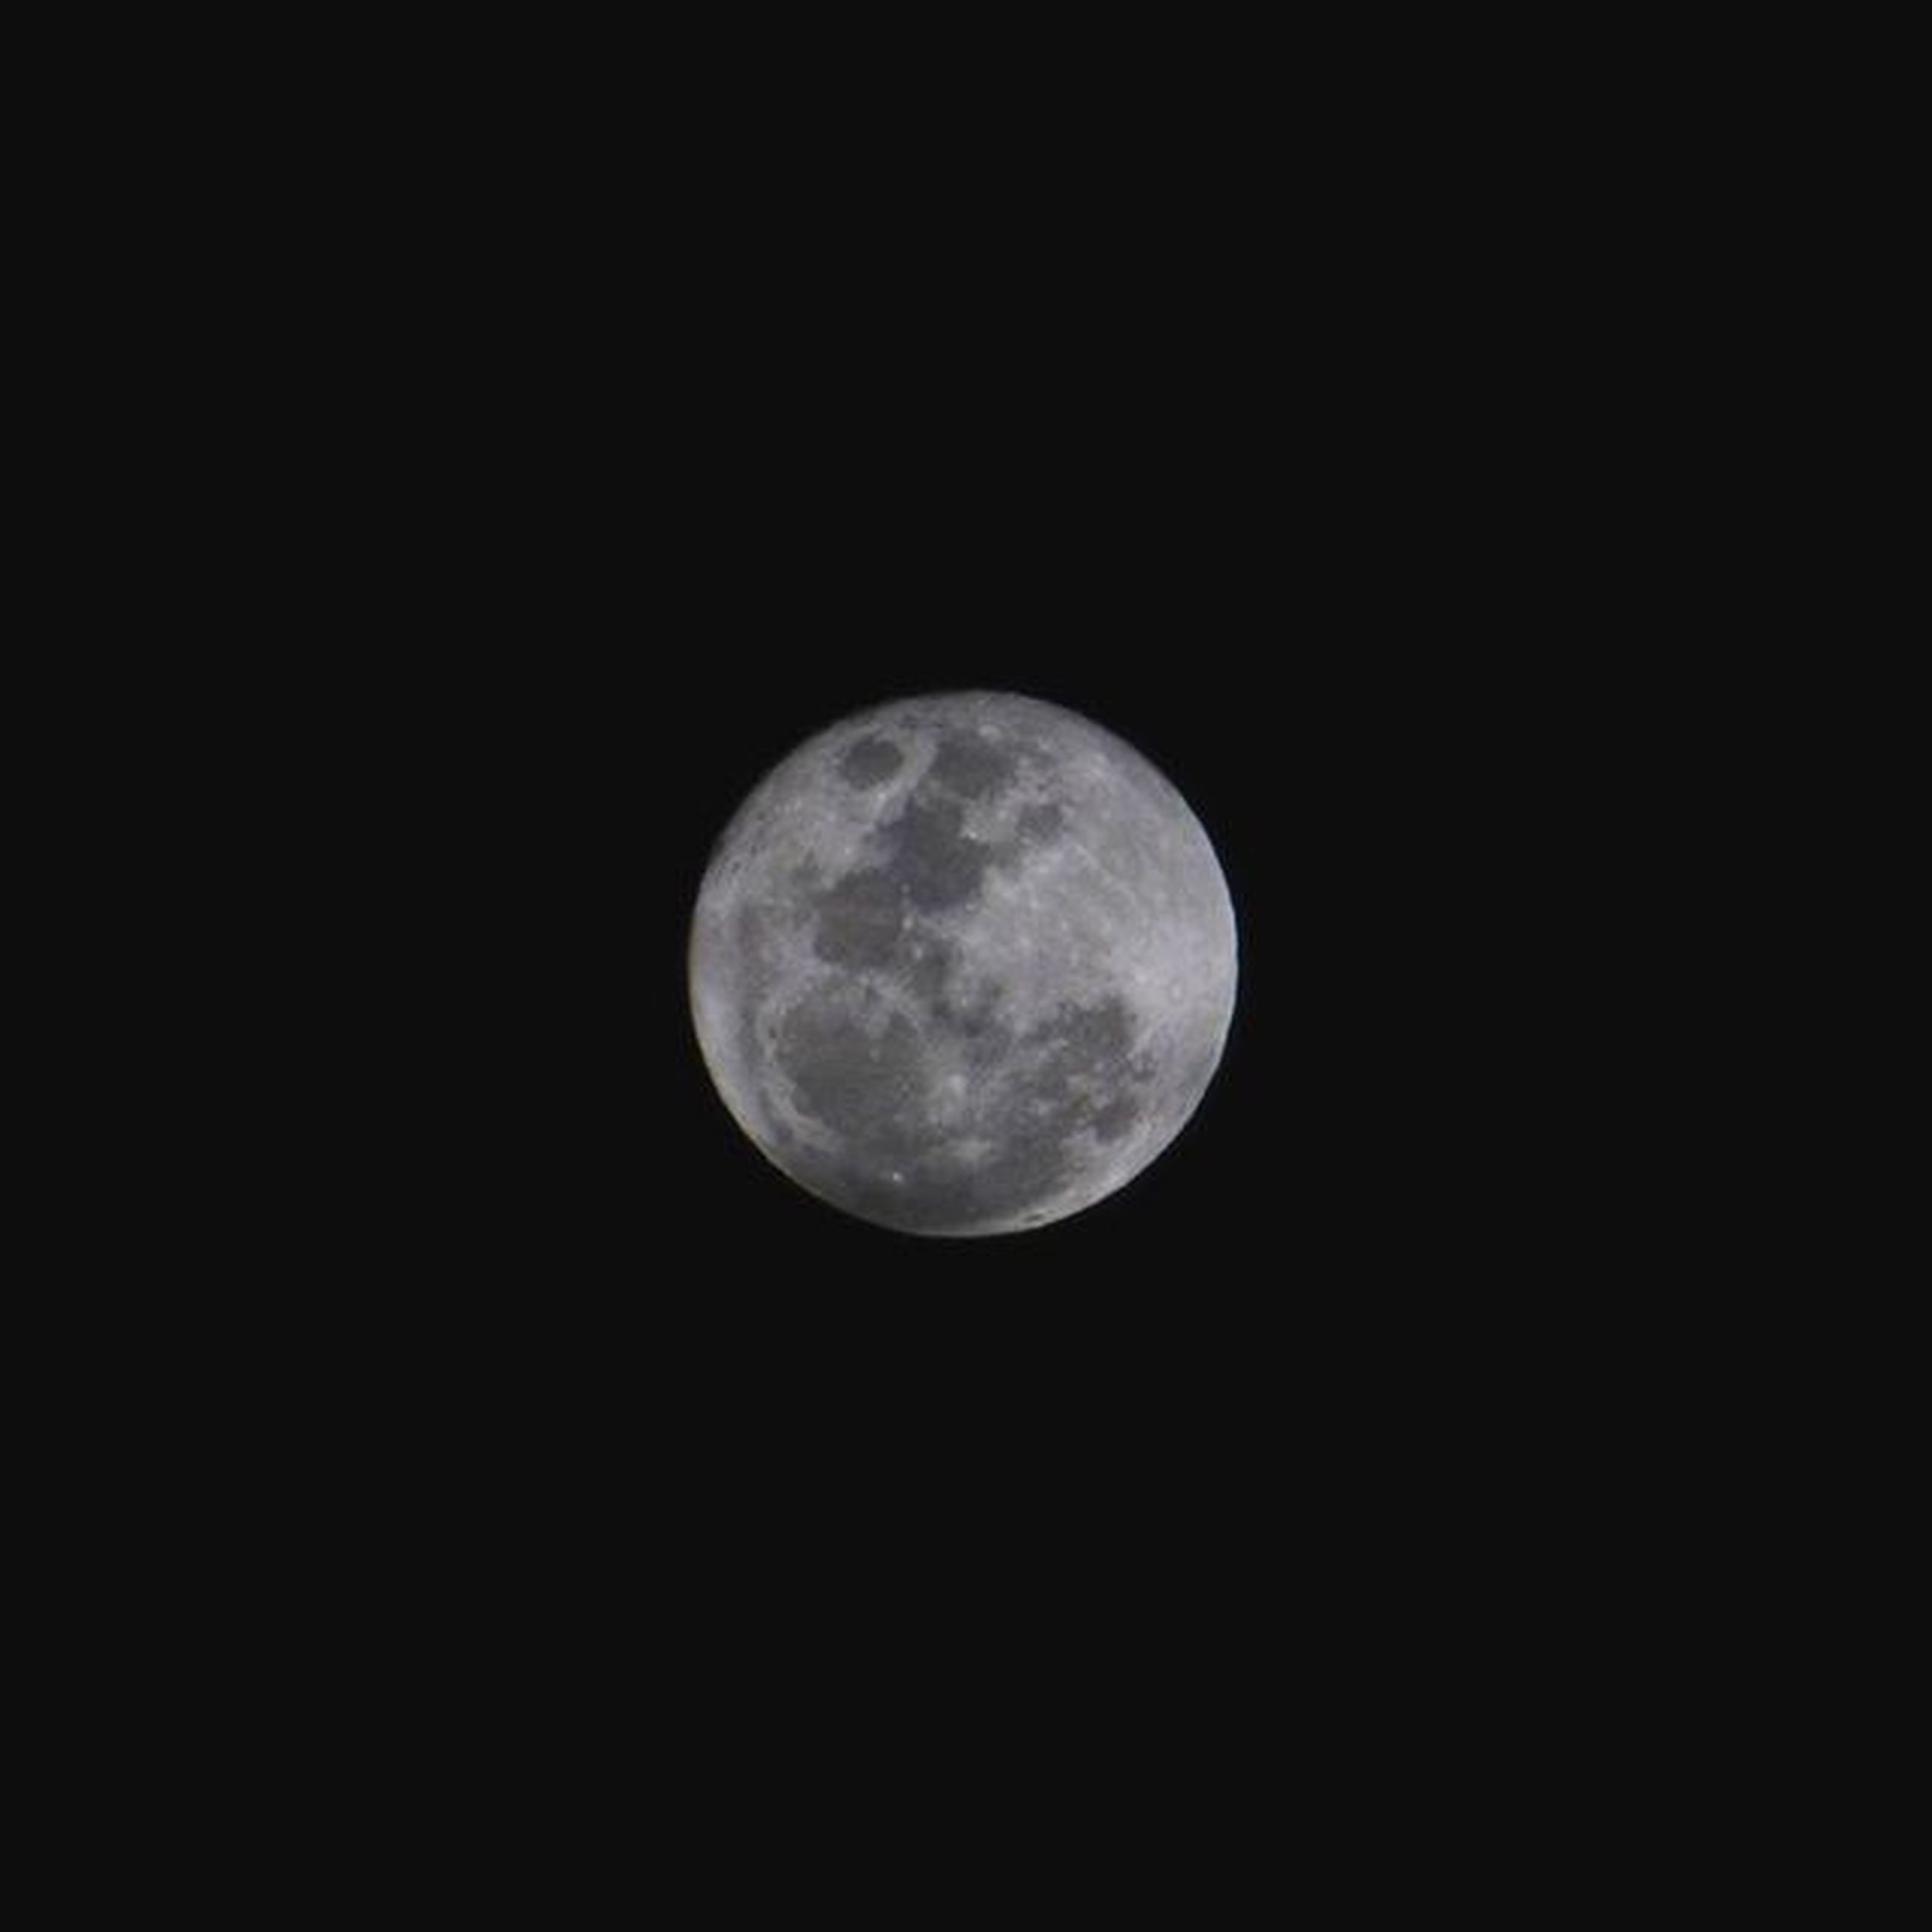 moon, astronomy, night, full moon, planetary moon, moon surface, beauty in nature, discovery, copy space, scenics, tranquil scene, tranquility, low angle view, space exploration, nature, circle, sphere, dark, majestic, clear sky